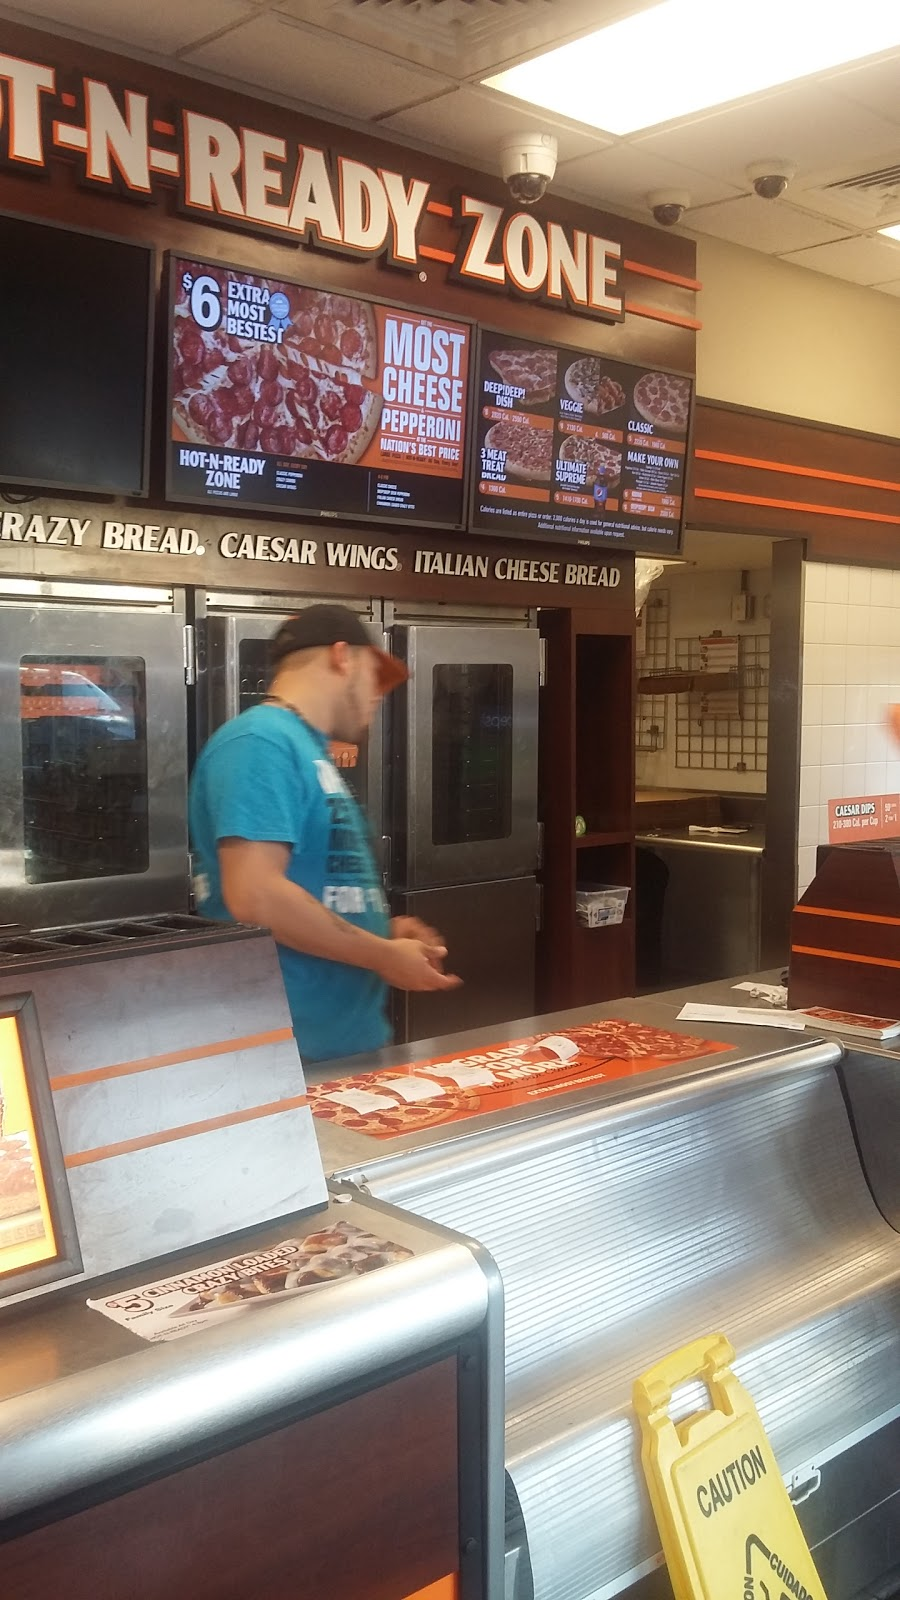 Little Caesars Pizza | meal delivery | 324 Hwy 43 S C, Saraland, AL 36571, USA | 2513806397 OR +1 251-380-6397